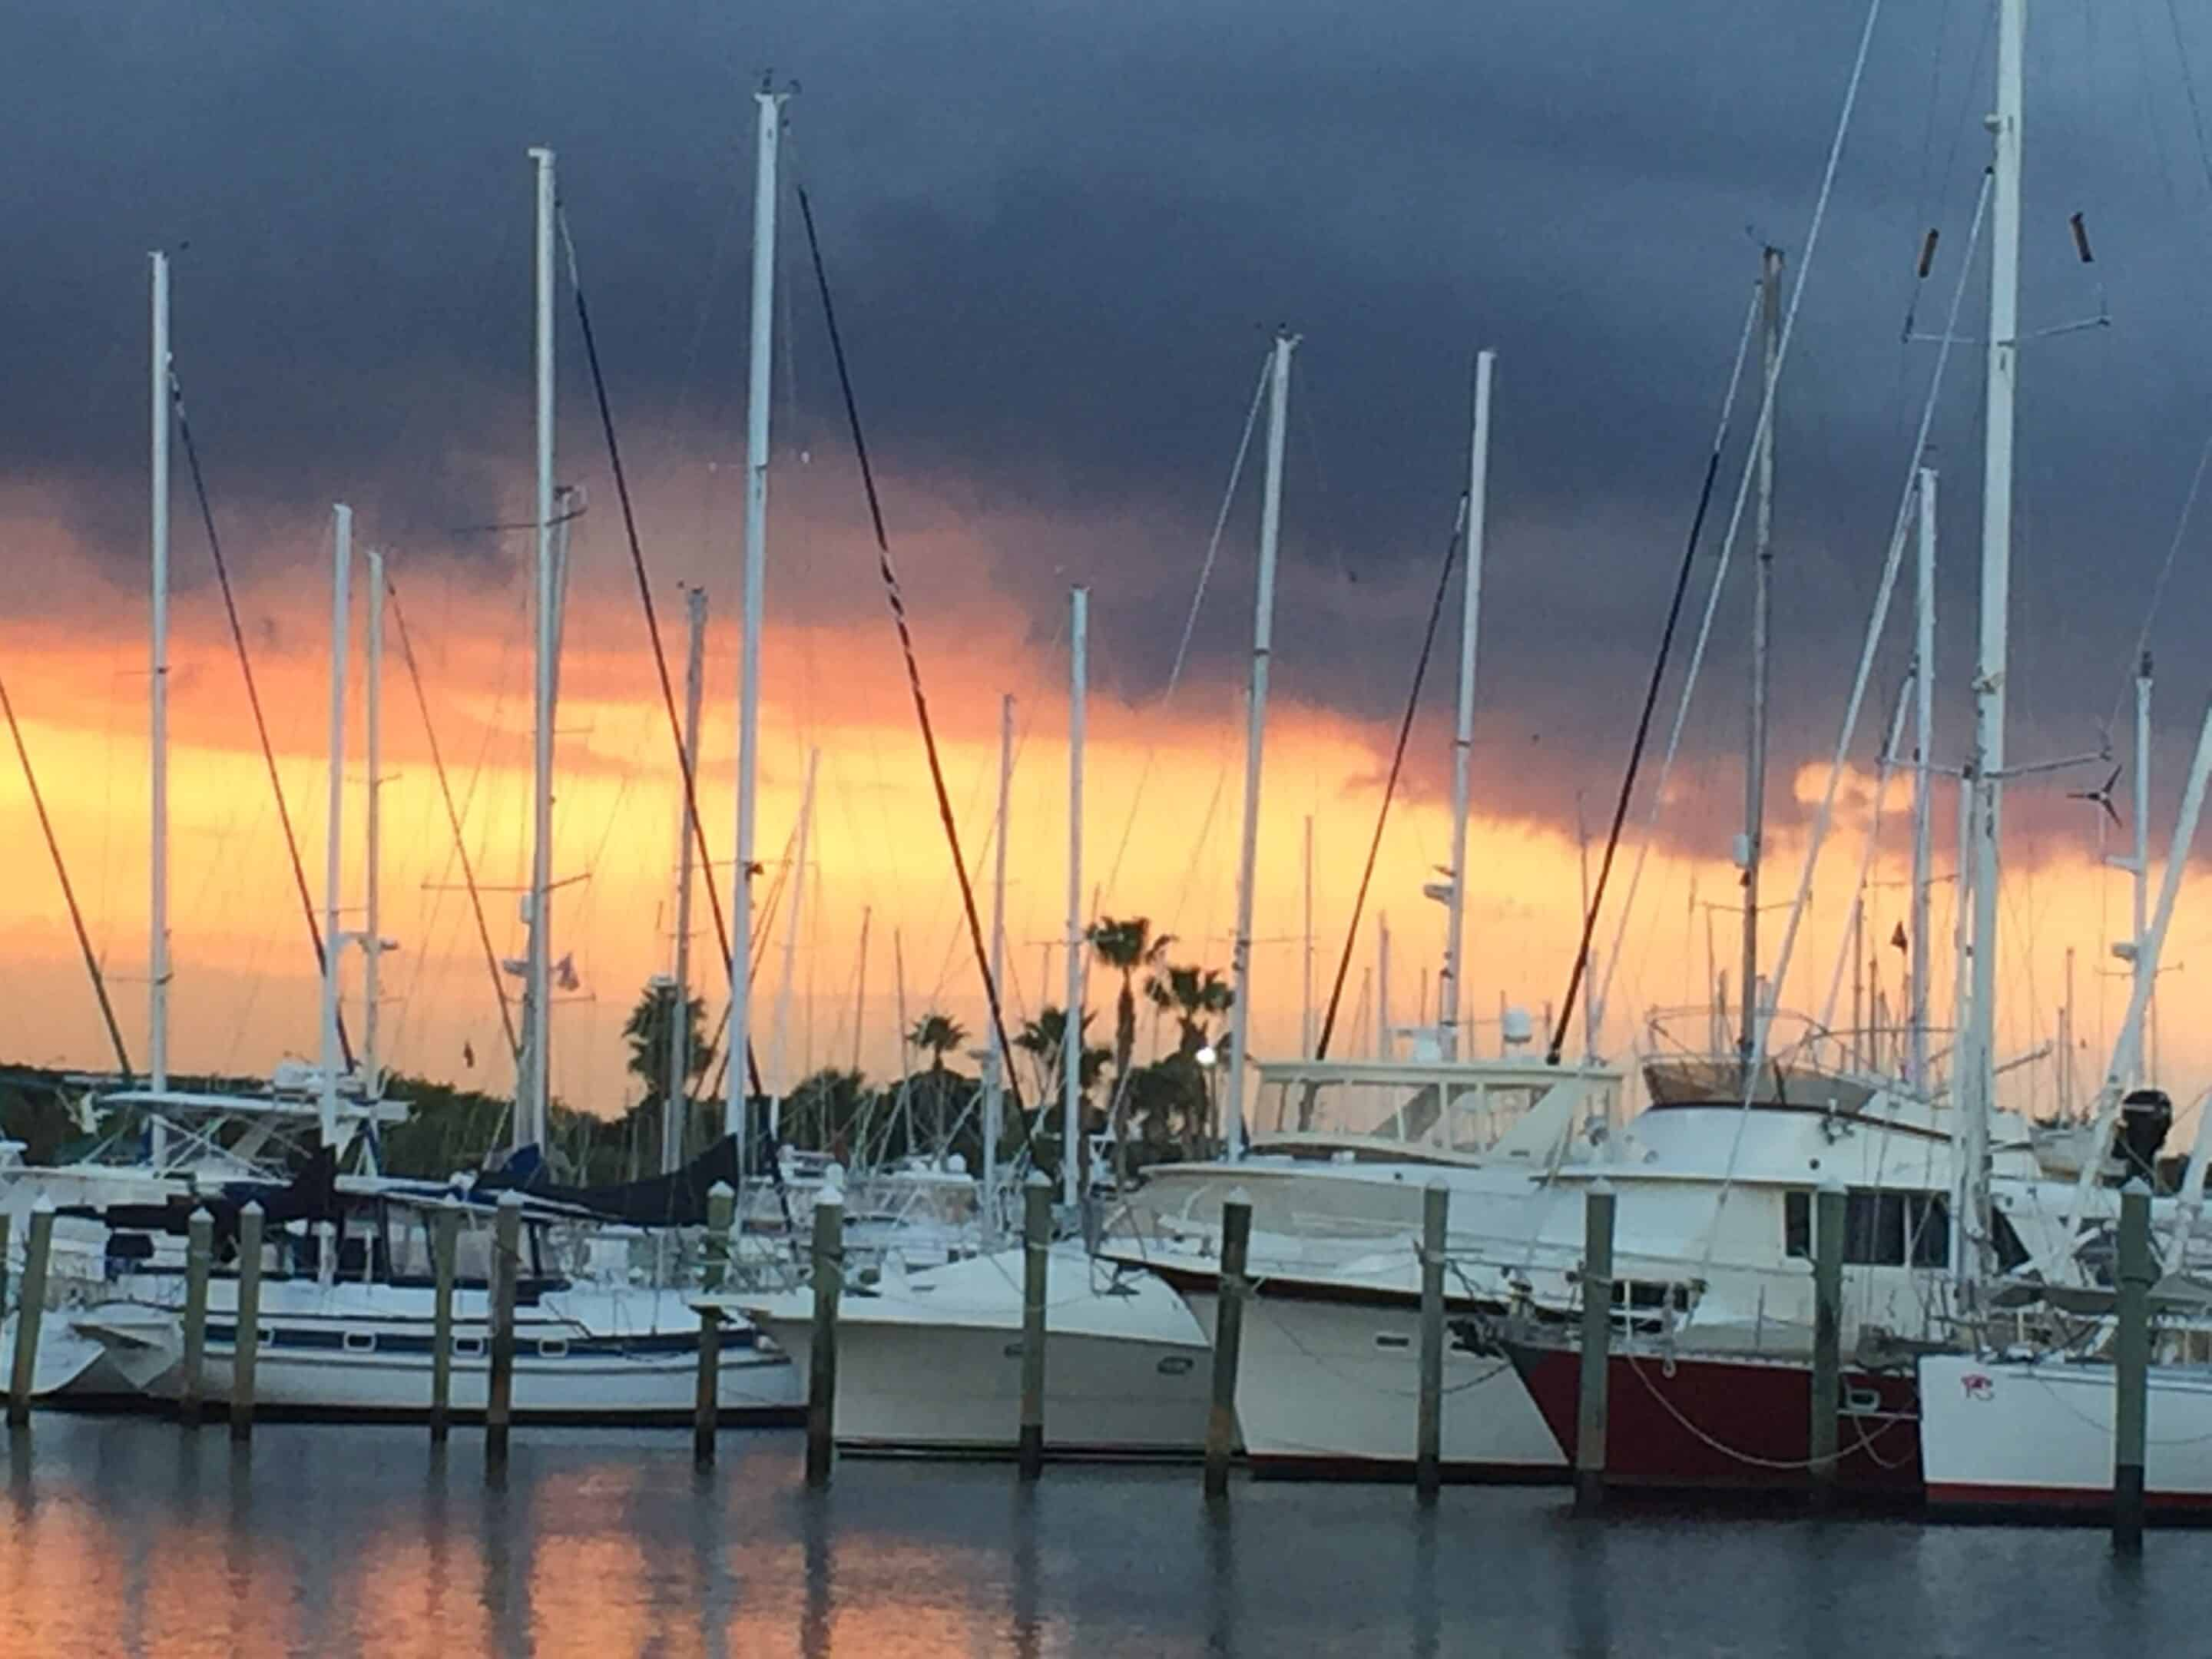 Sunset at Harbortown Marina